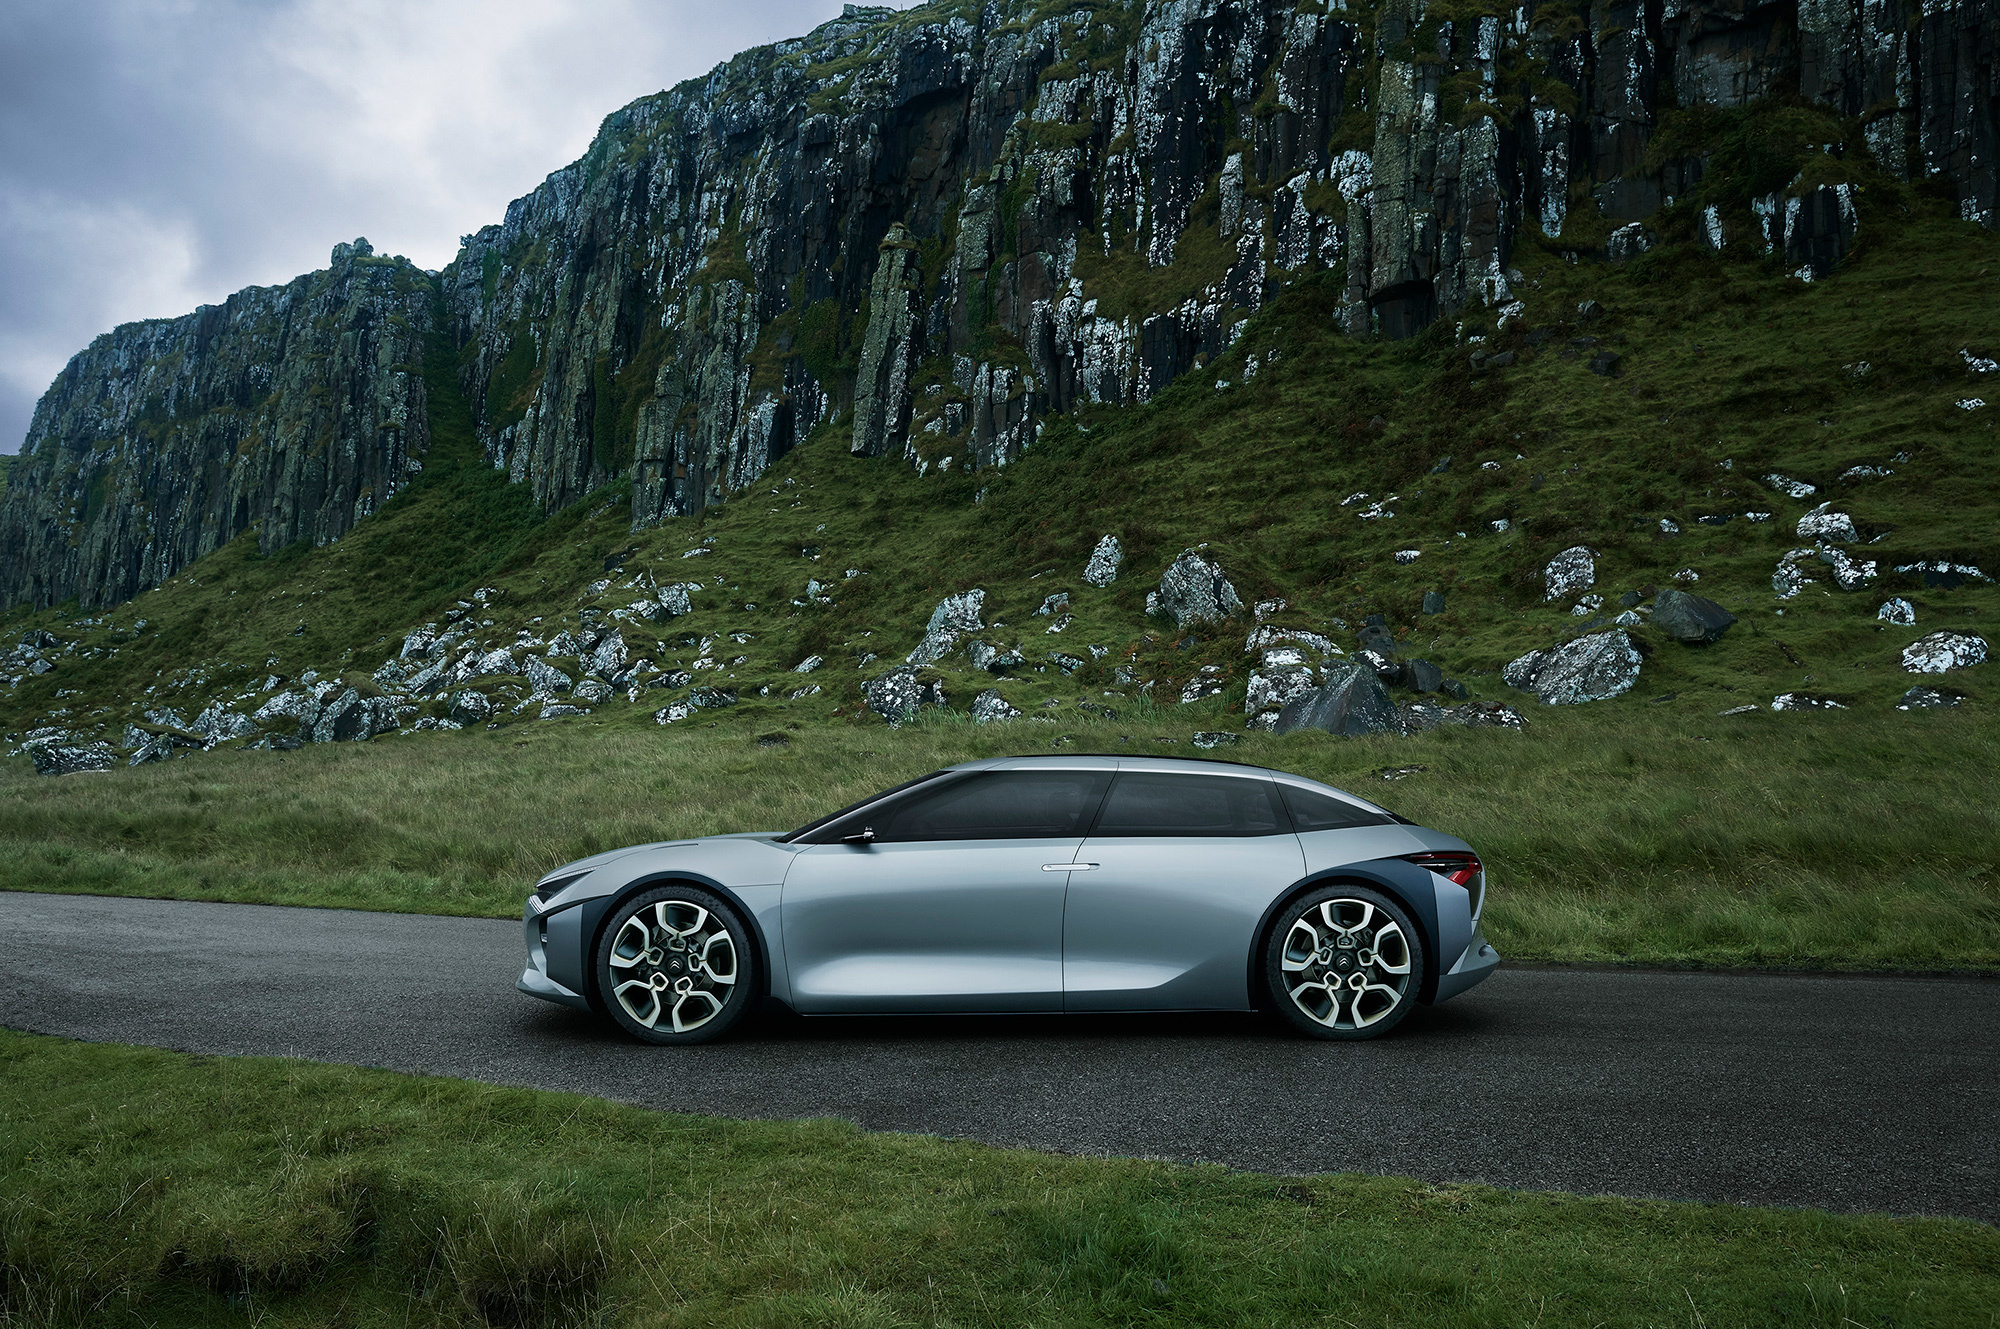 Citroen Cxperience High Quality Wallpapers